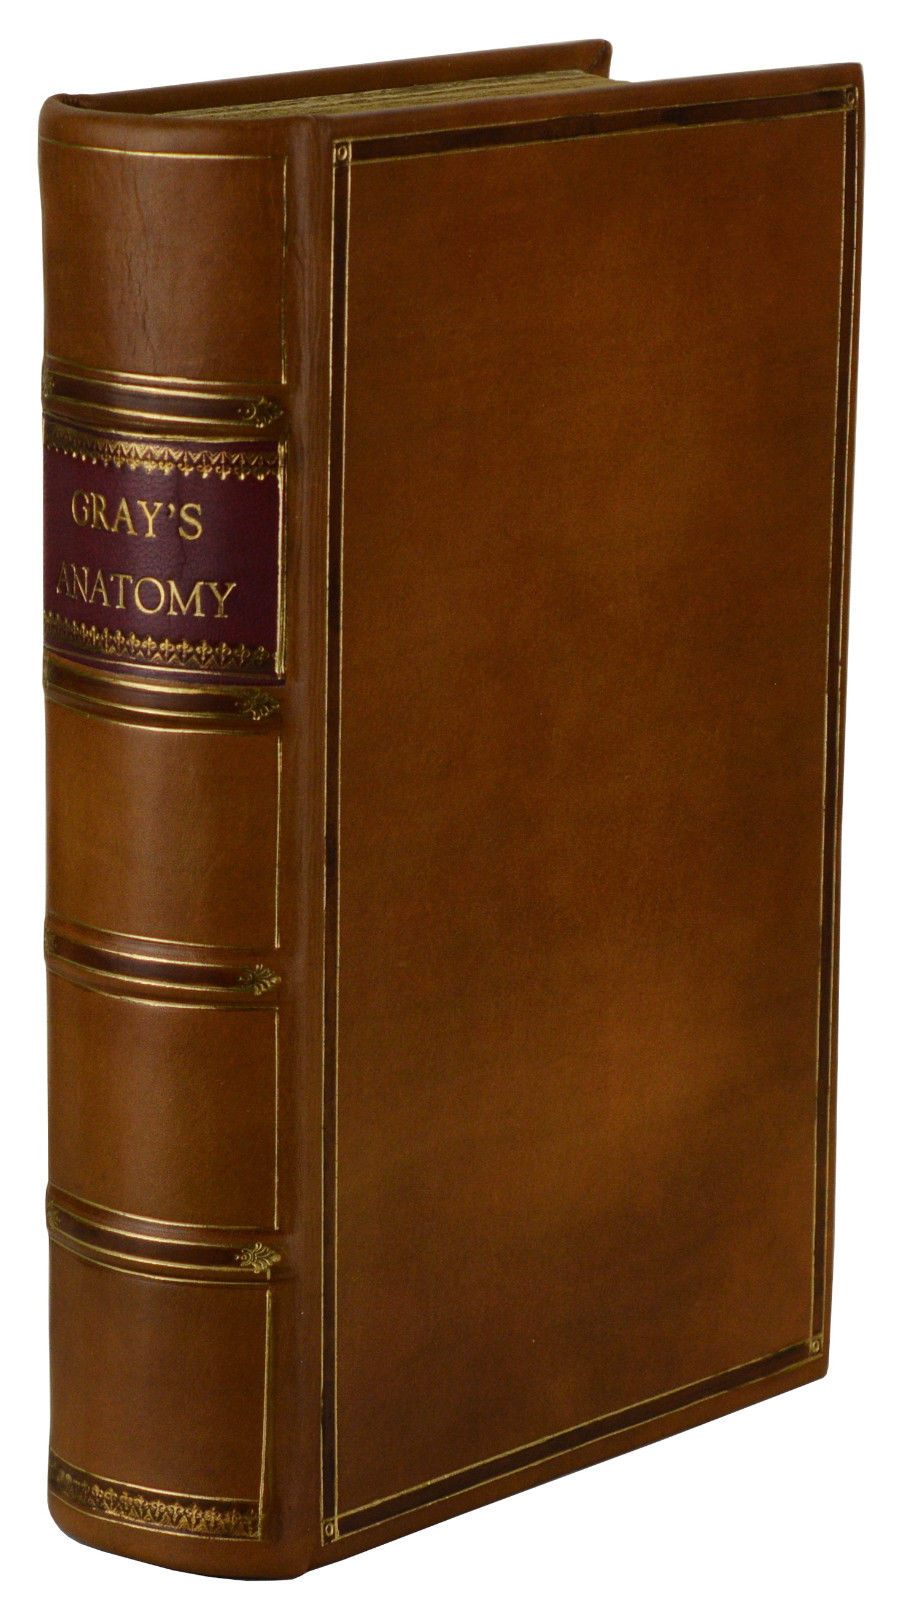 Gray\'s Anatomy Anatomy, Descriptive and Surgical | Henry Gray, H. V. ...